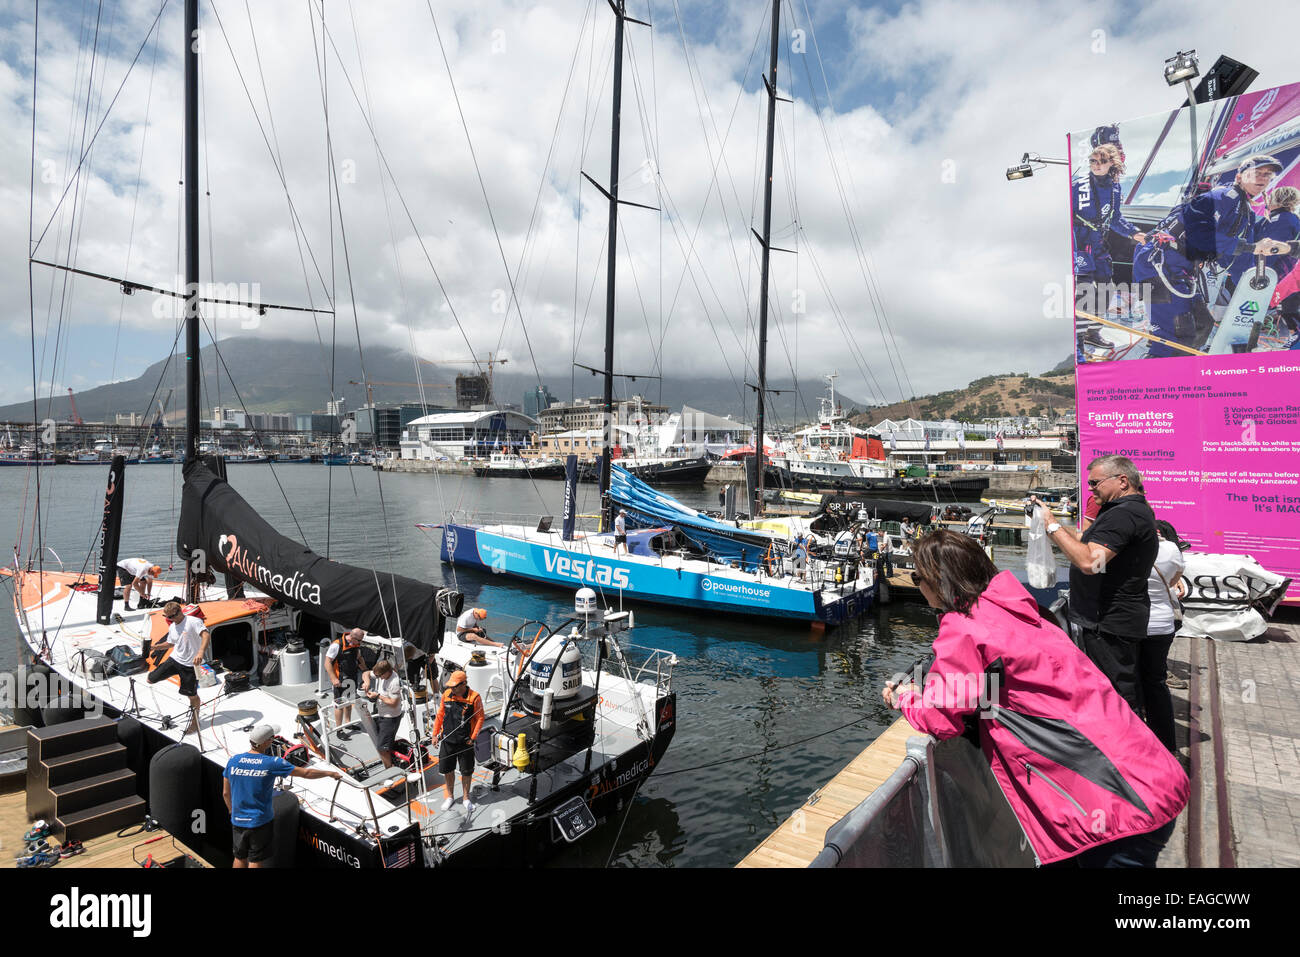 Audience watching preparations for in harbour race, Volvo Ocean Race 2014-2015, Cape Town, South Africa - Stock Image